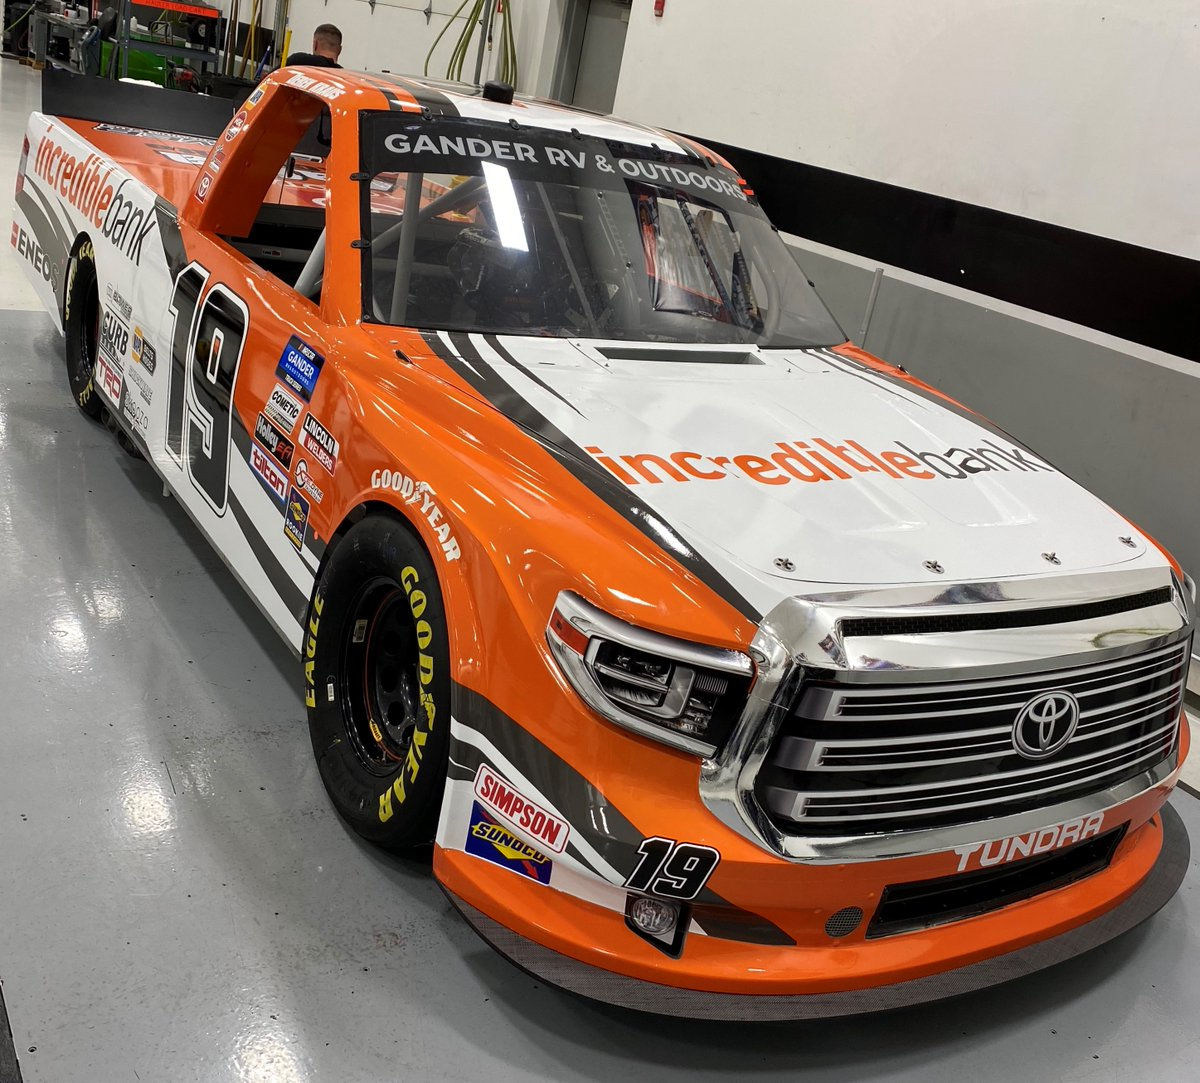 Look at this Bad Boy! The #19 Toyota Tundra truck is in the shop as the crew makes final preparations for @derek9kraus.  Race day is tomorrow at Tennessee's @BMSupdates, @IncredibleBank will be featured as the primary sponsor! @BMR_NASCAR #fastandfurious https://t.co/F35q5f2mah